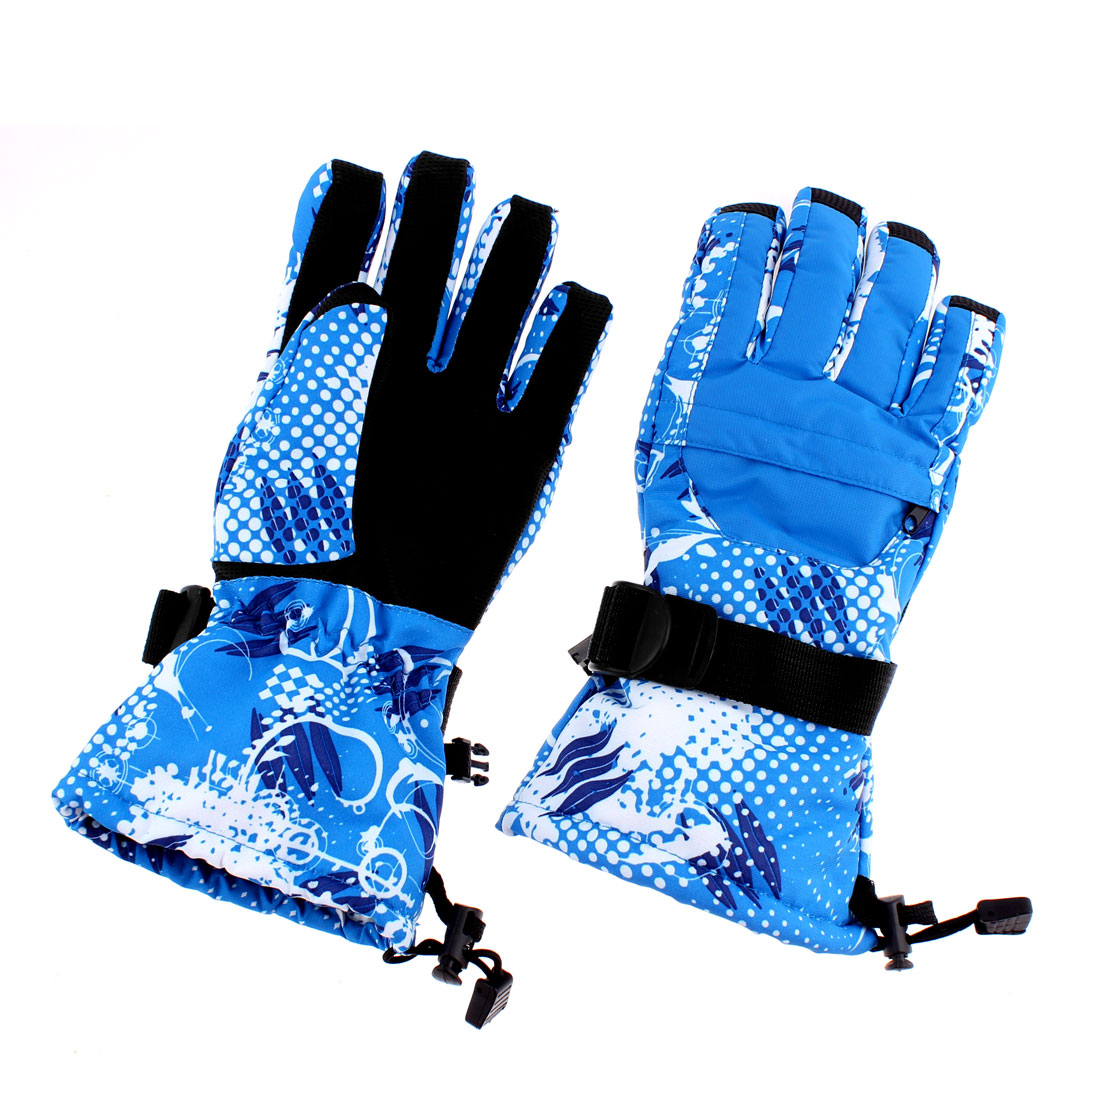 Men Winter Outdoor Snowboard Skiing Snowboarding Ski Gloves Blue XL Pair